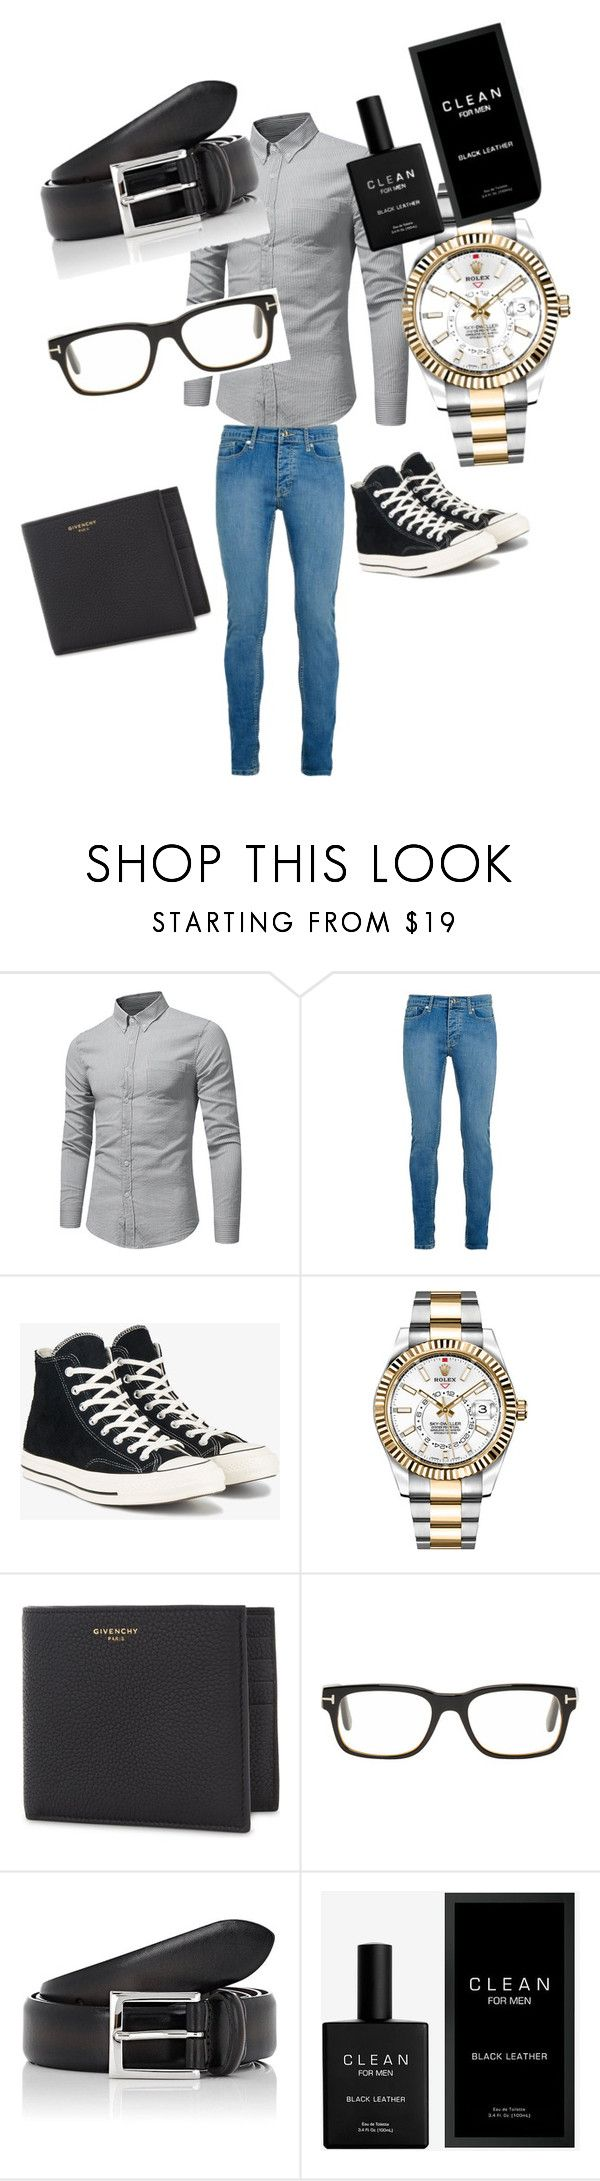 featuring Topman, Converse, Rolex, Givenchy, Tom Ford, Barneys New York, men's fashion and menswear